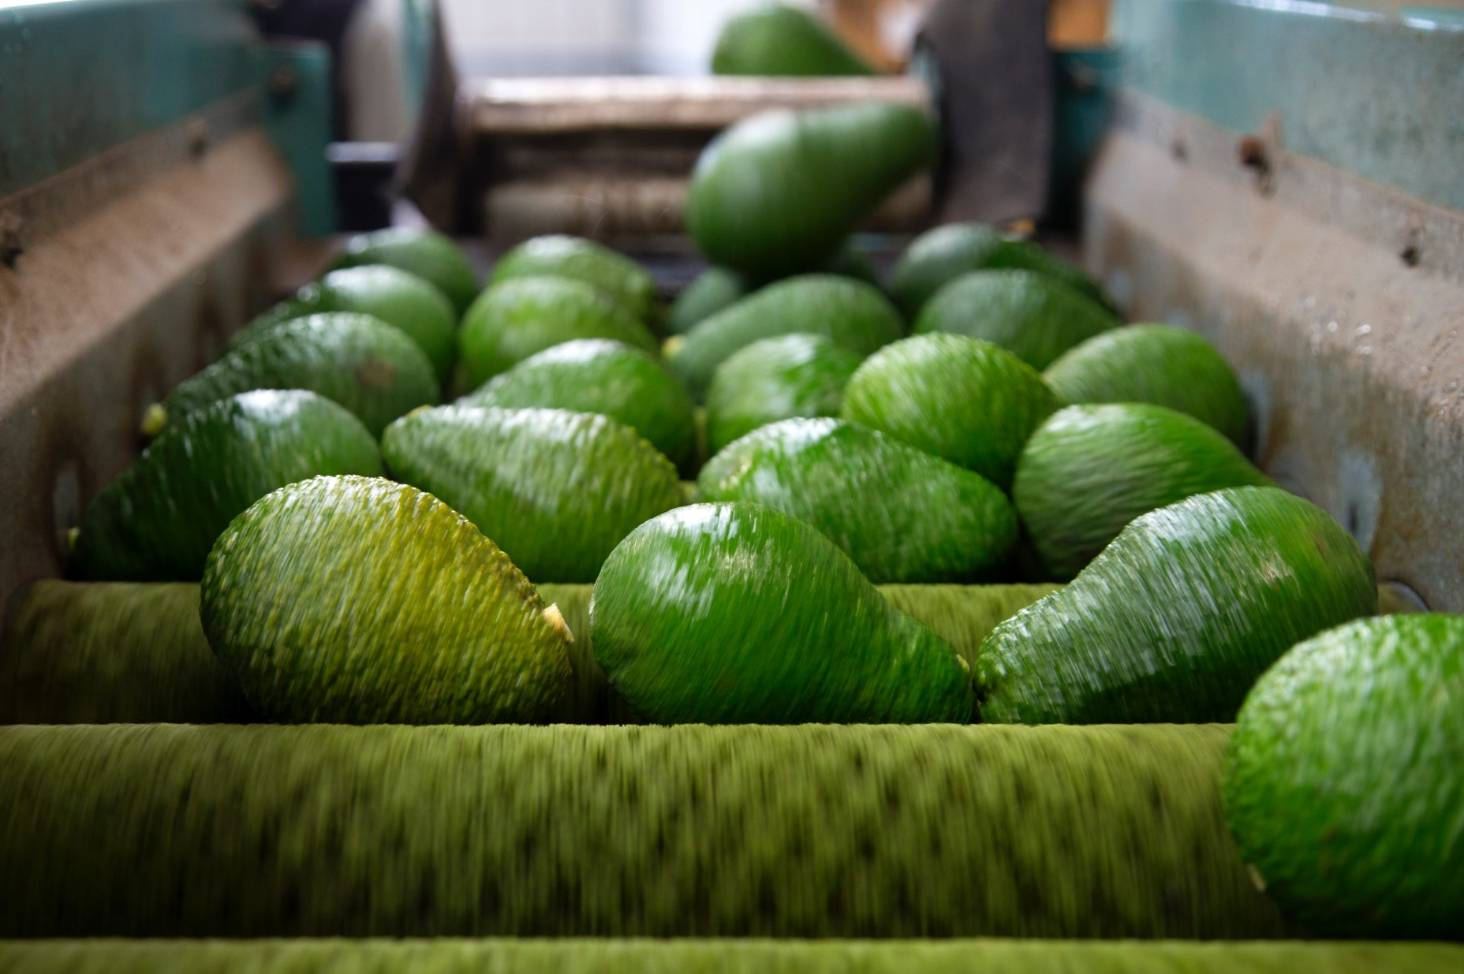 Avocado Boom Country S Avocado Shortage Continues As Exports Boom But